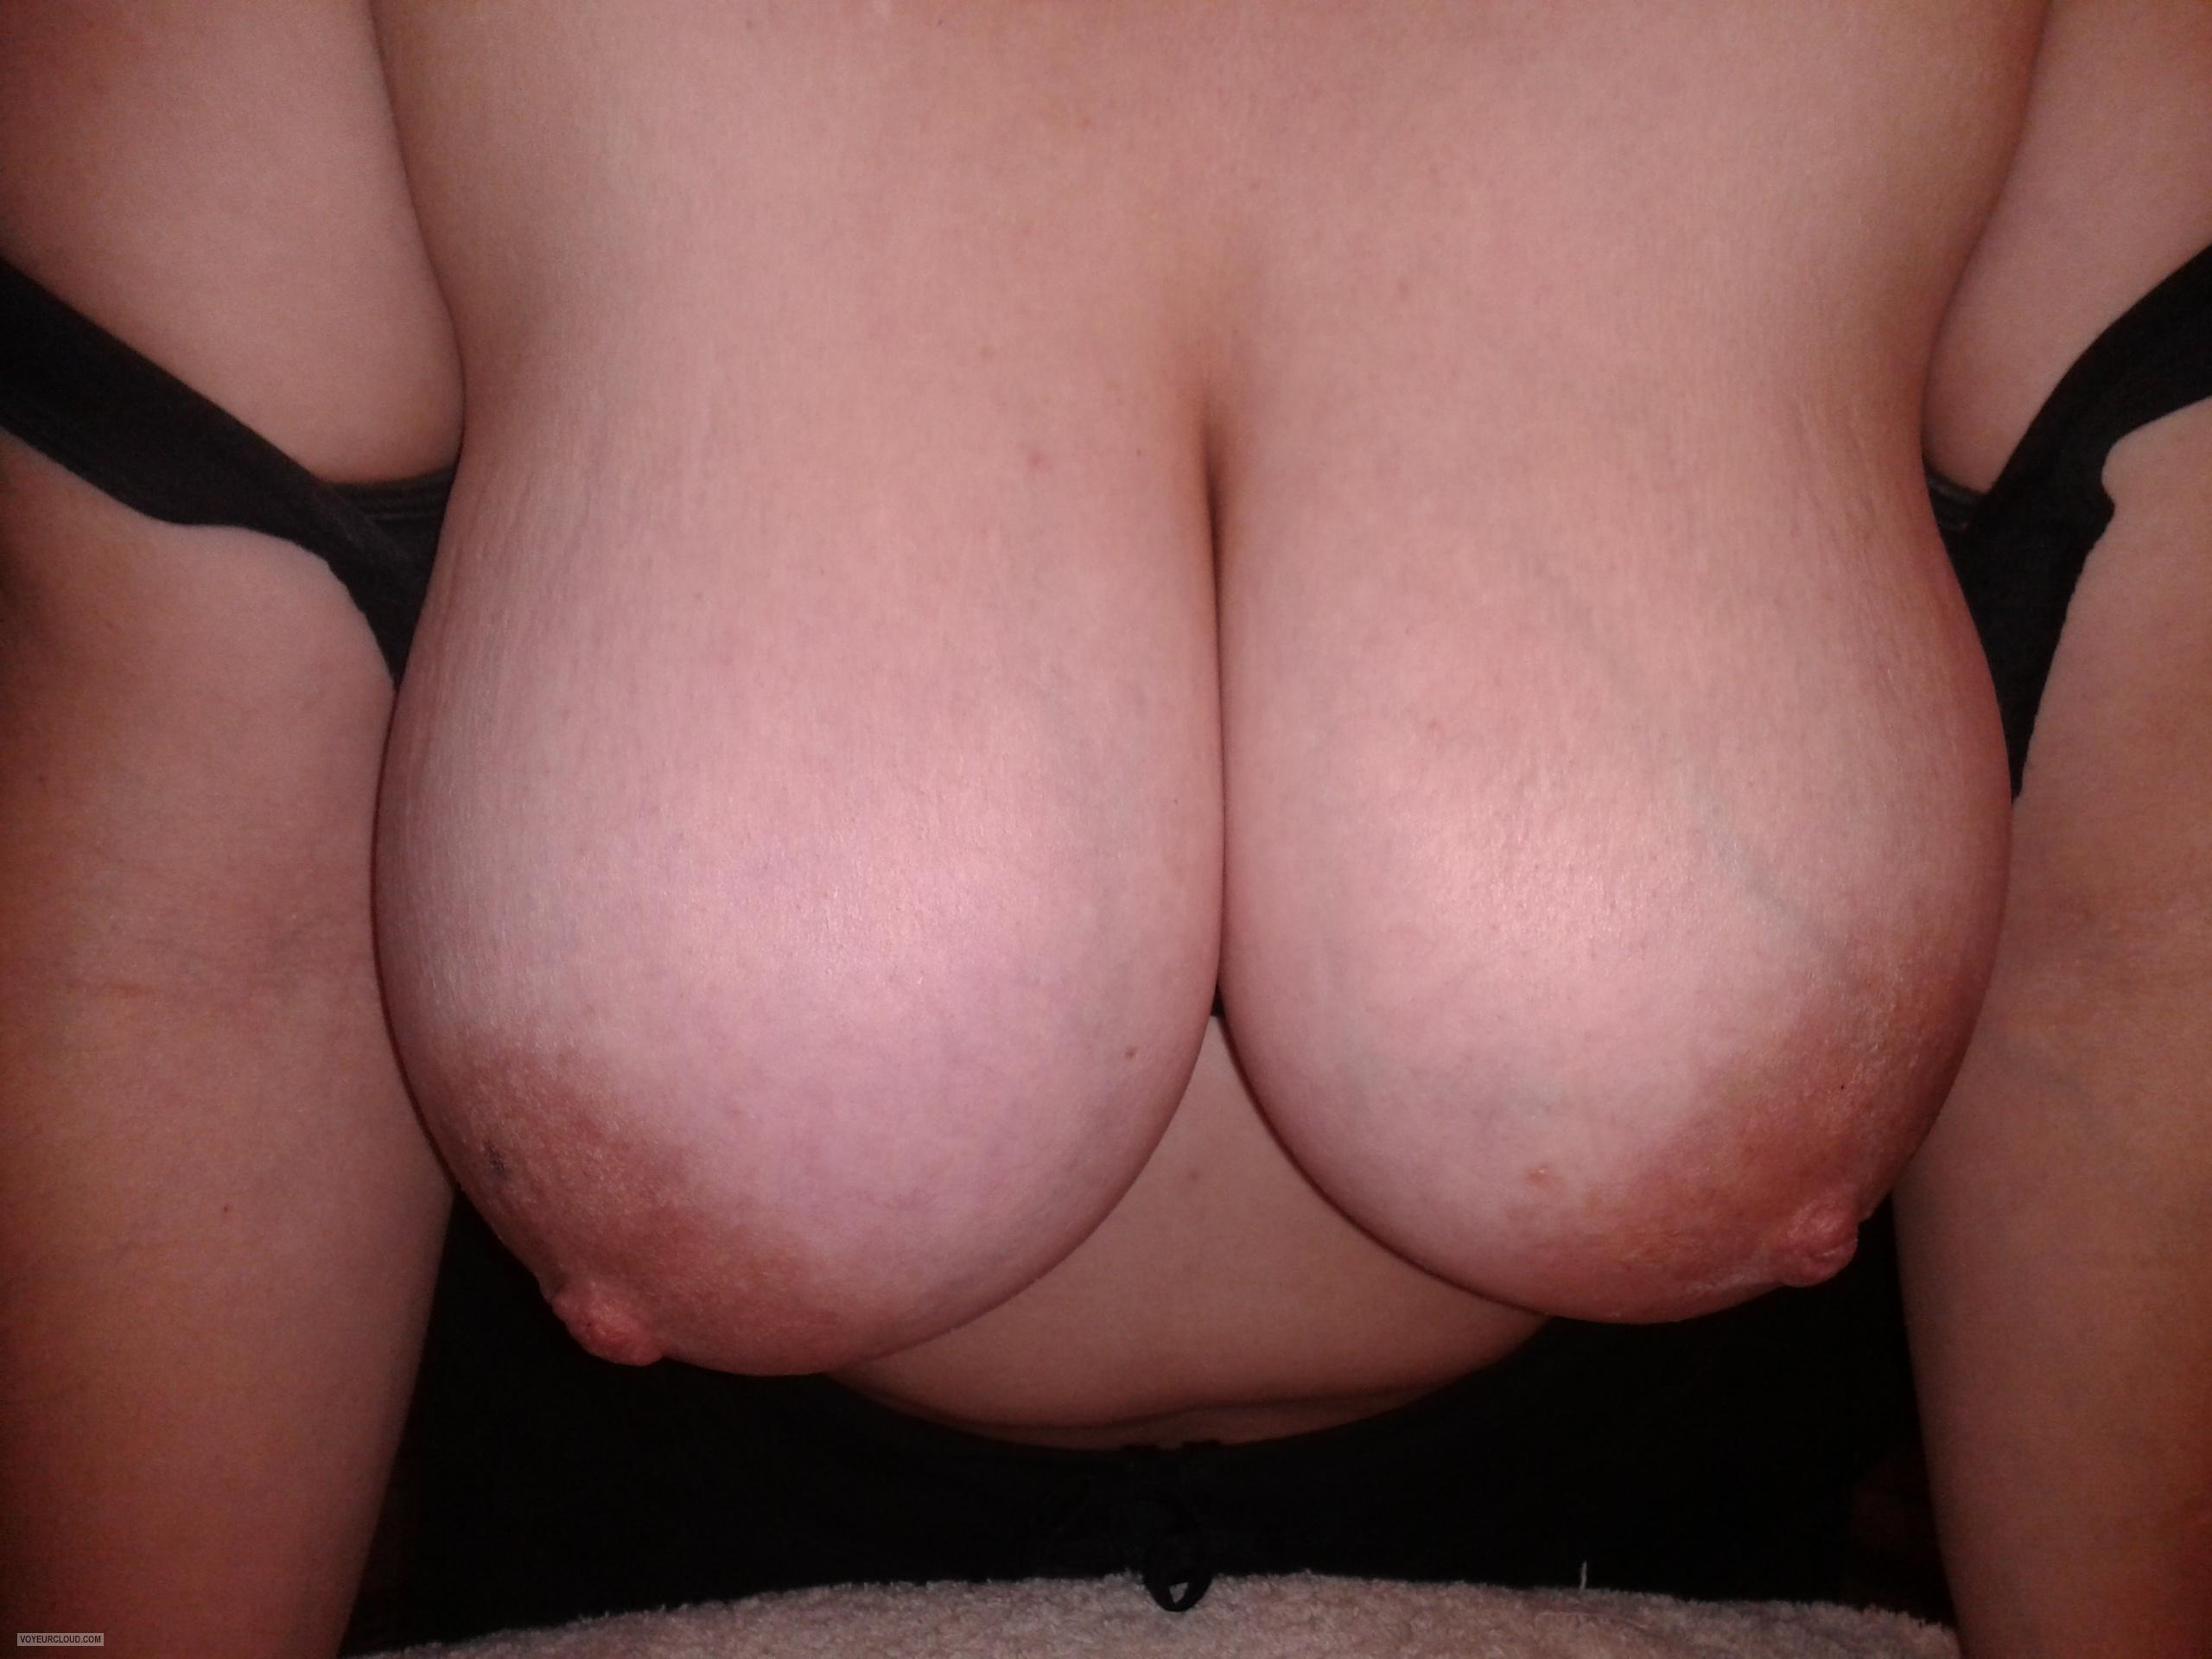 Tit Flash: Wife's Very Big Tits - Mmmounds from United States